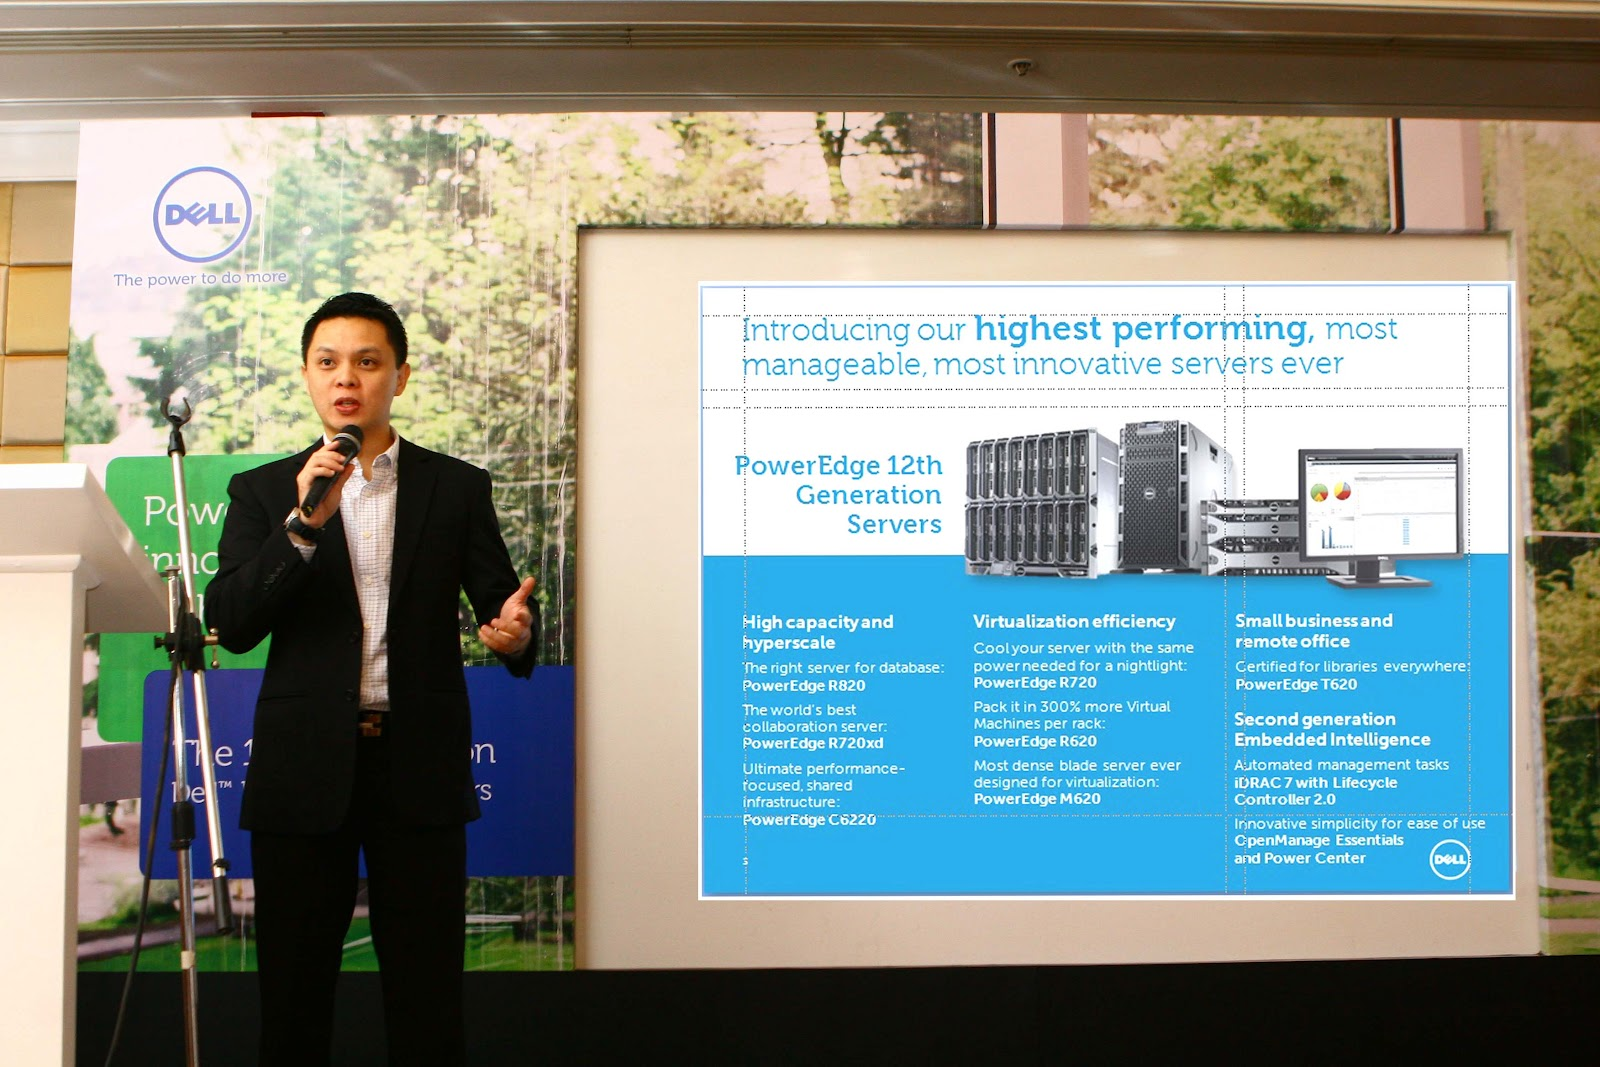 TeamAguas: DELL launched PowerEdge 12th Generation Server